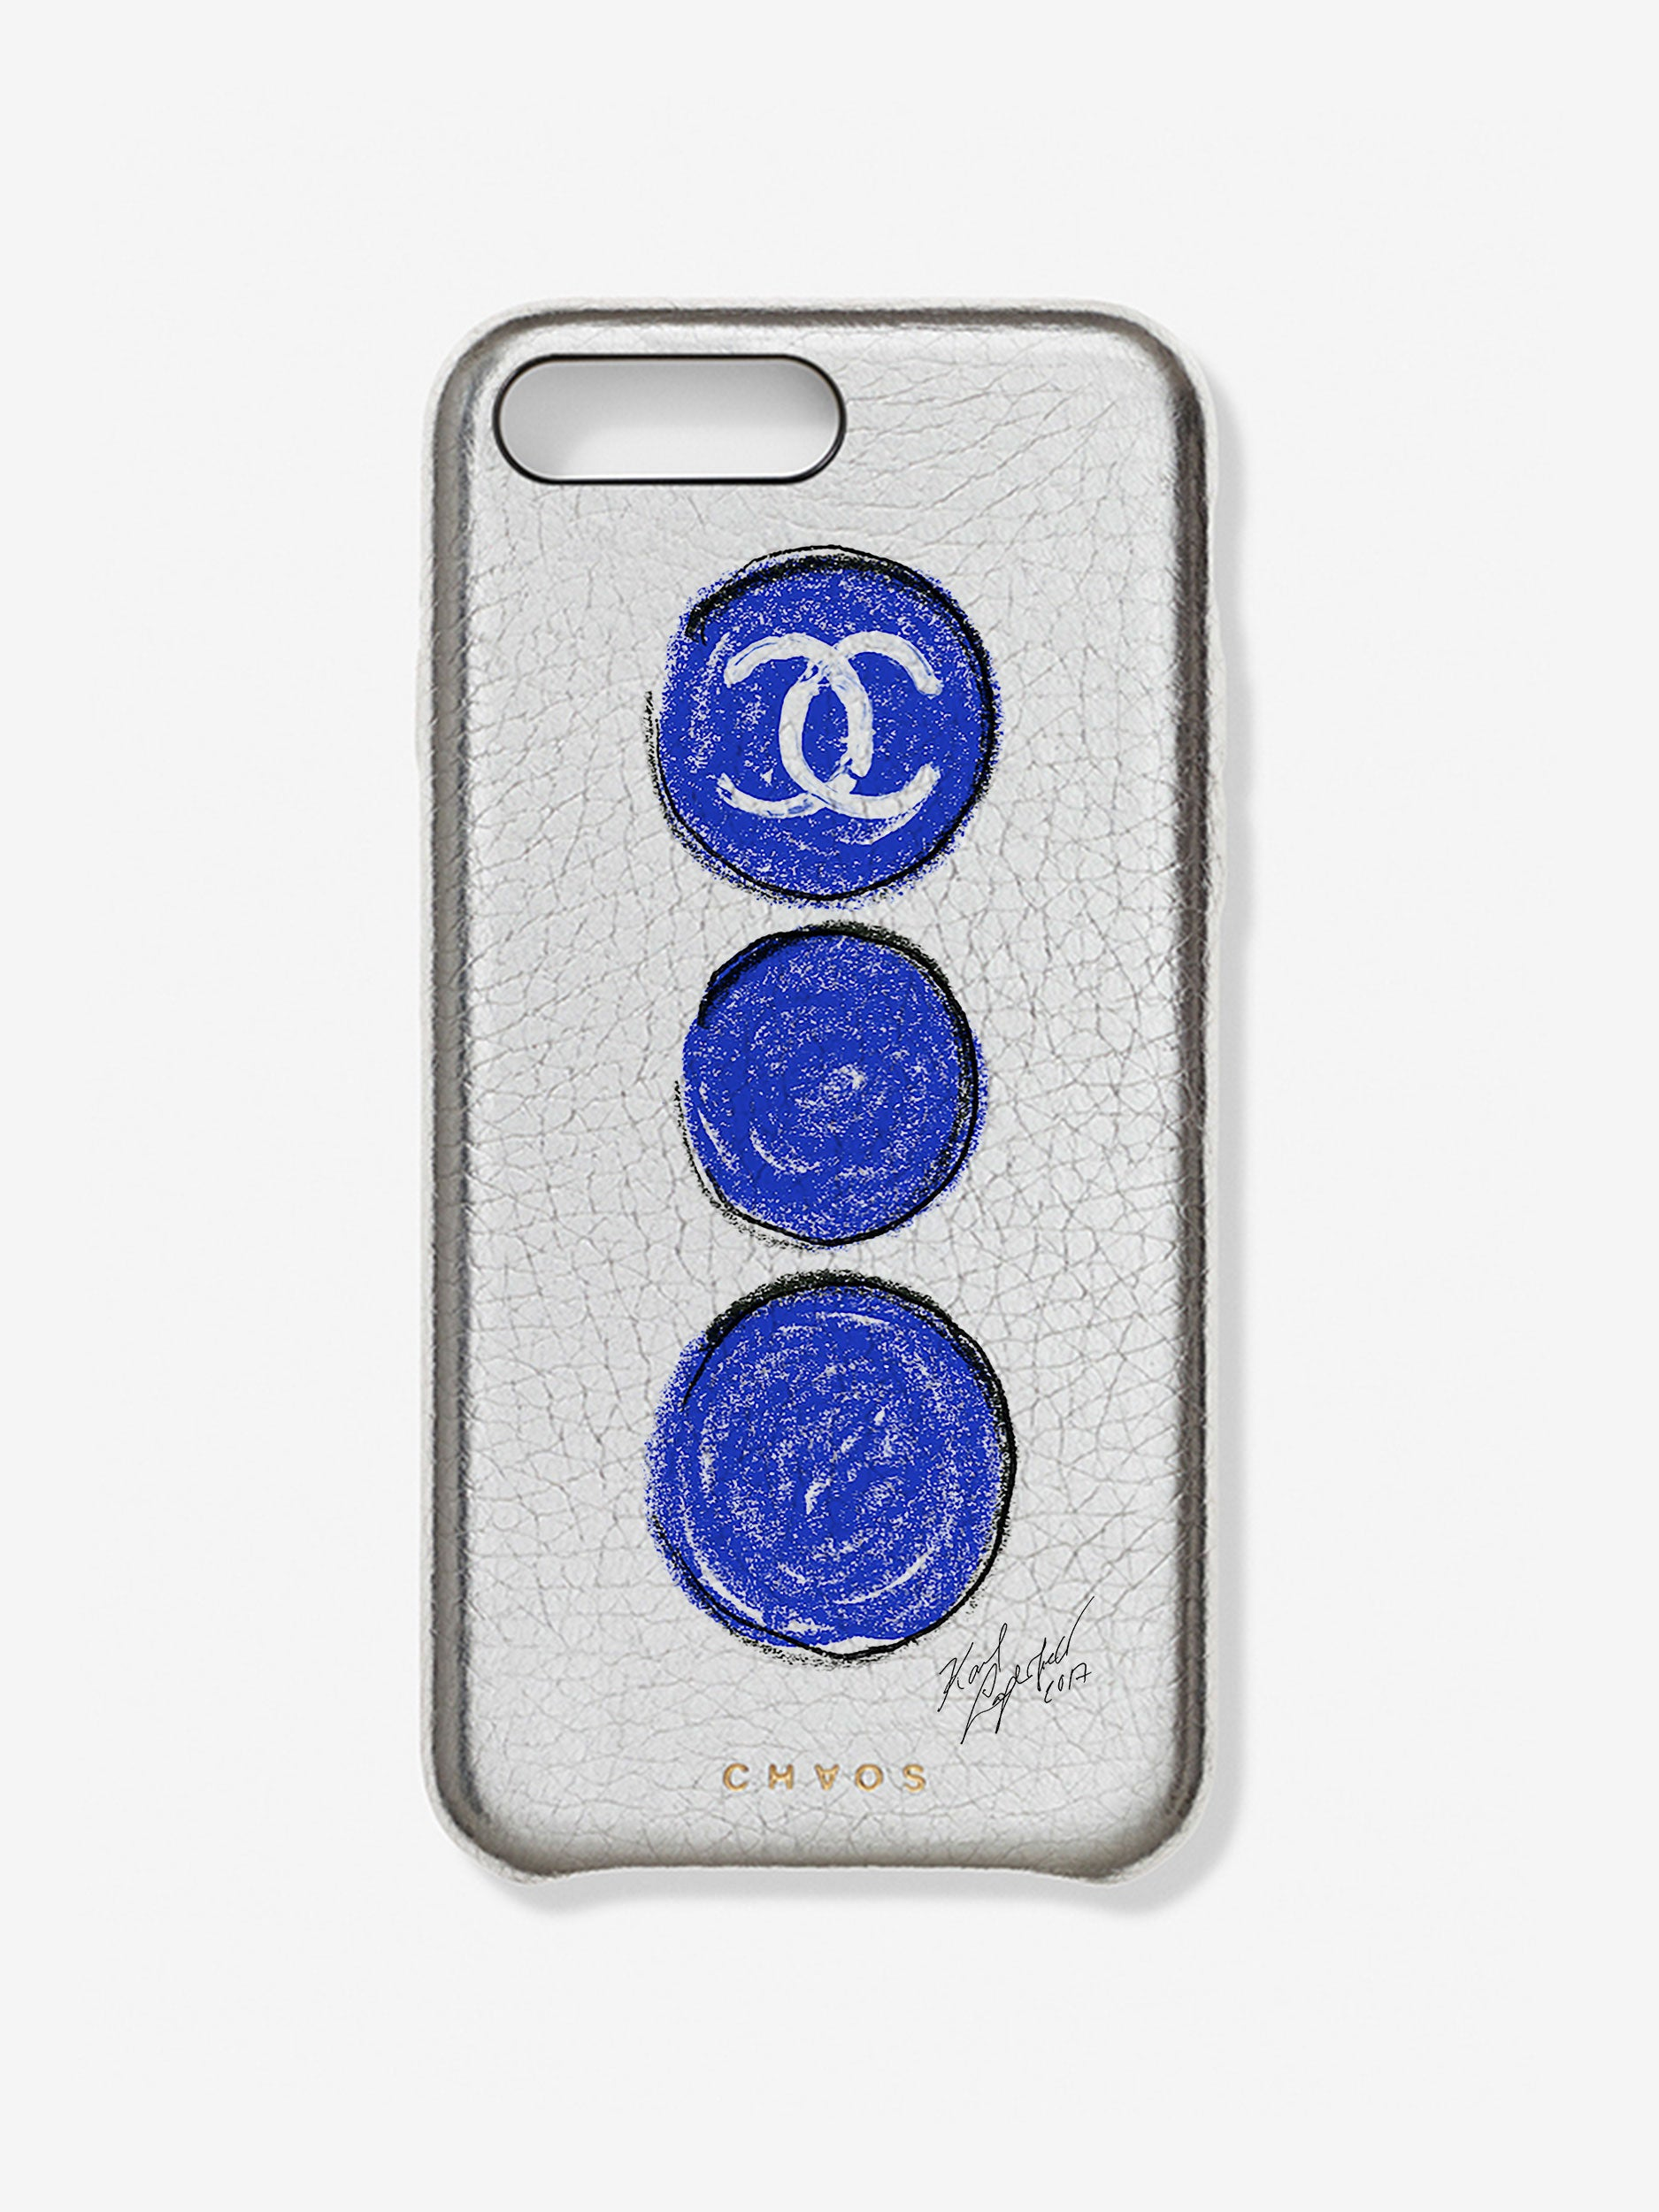 Chaos X Chanel X Colette Collaboration Case Silver